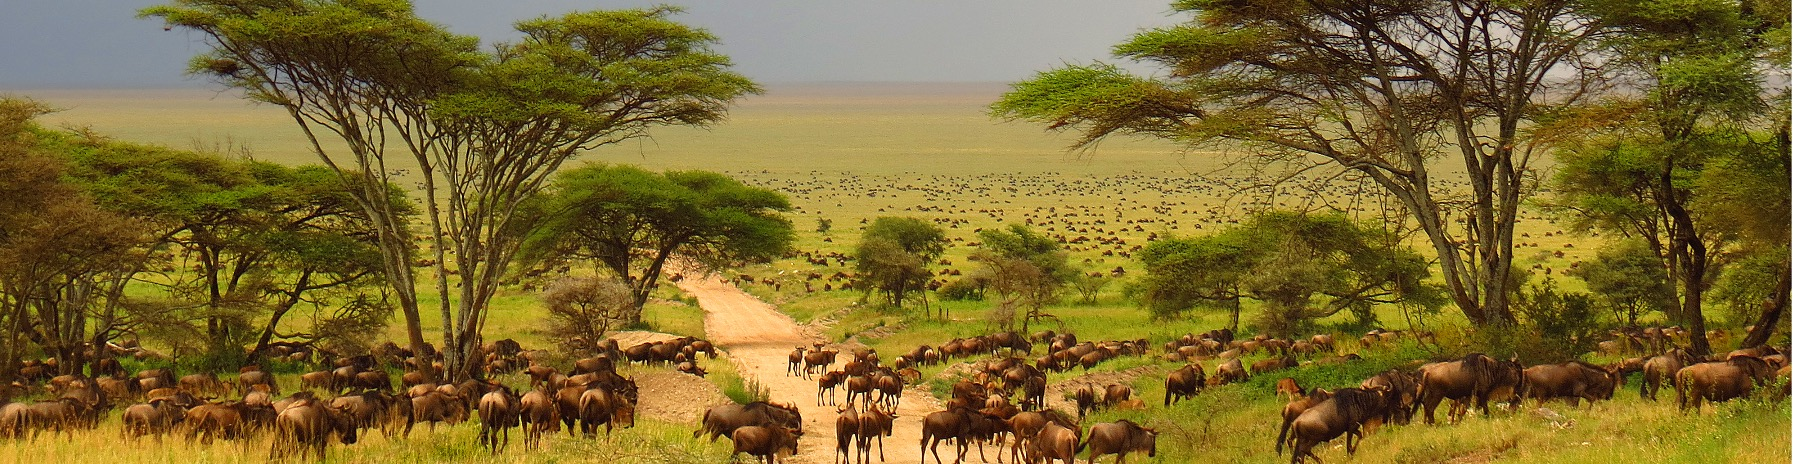 Kenya bush, beaches, & cities